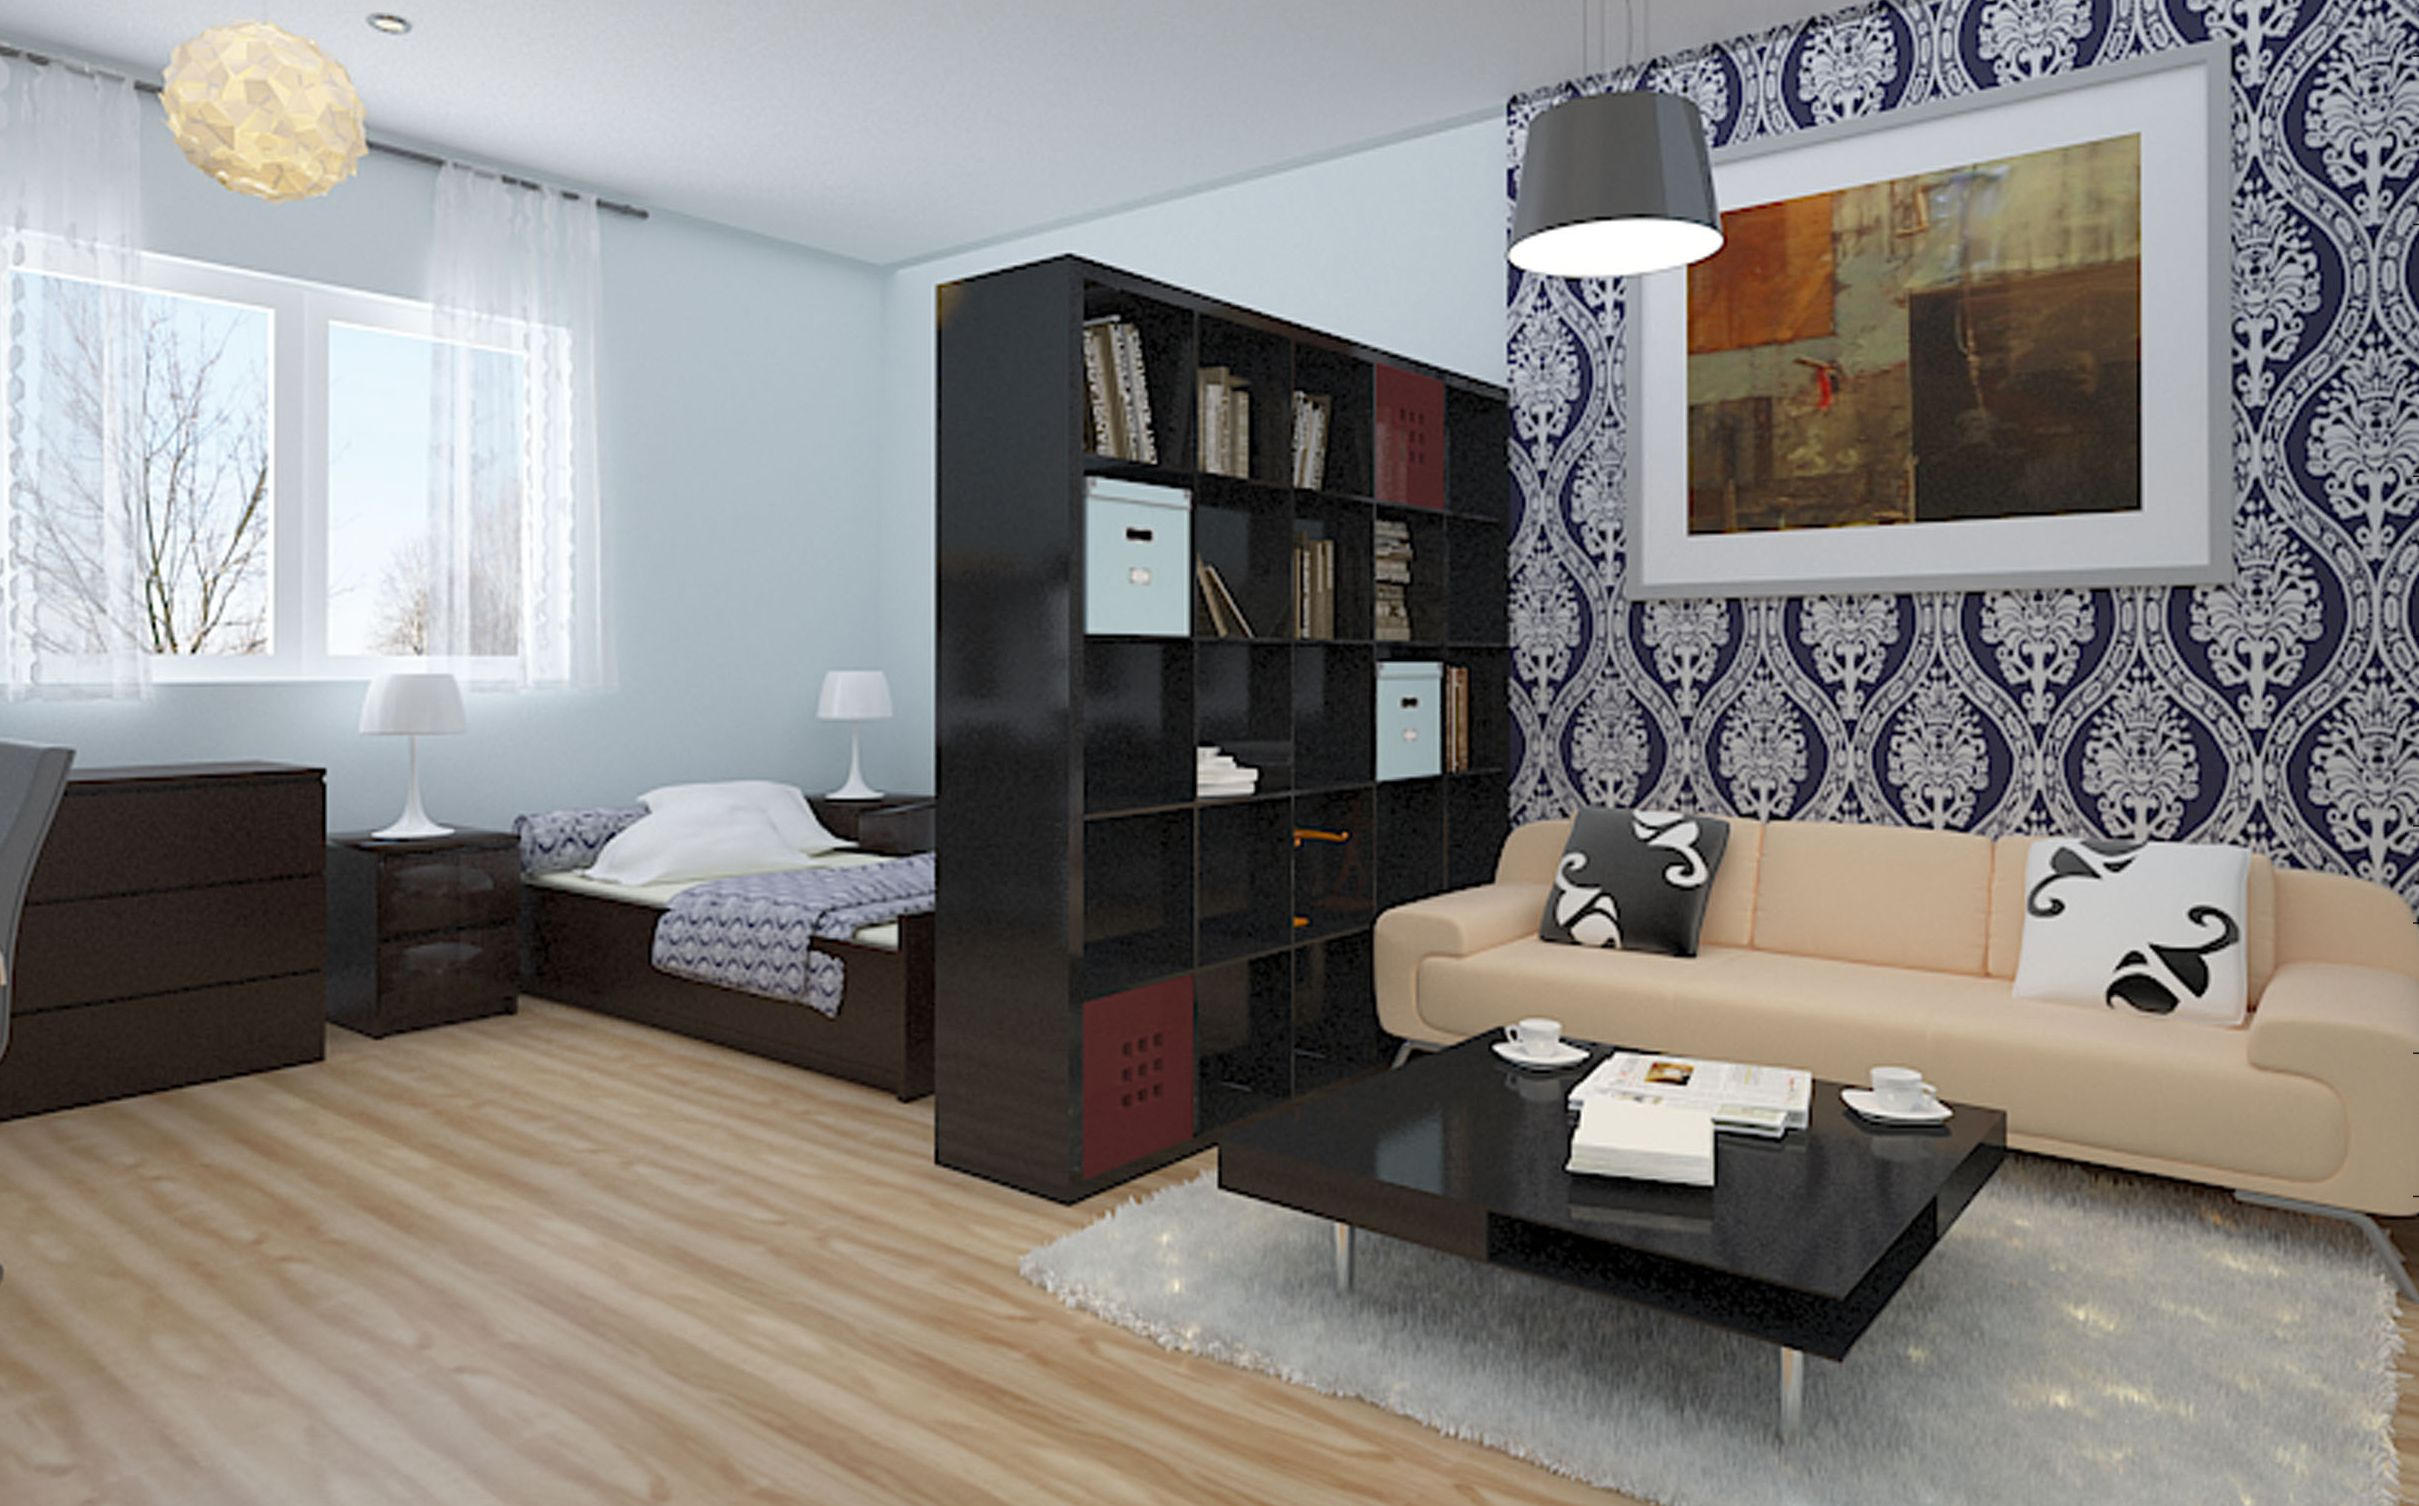 Studio Apartment Decorating Ikea For Your Home On Apartments Images Design A